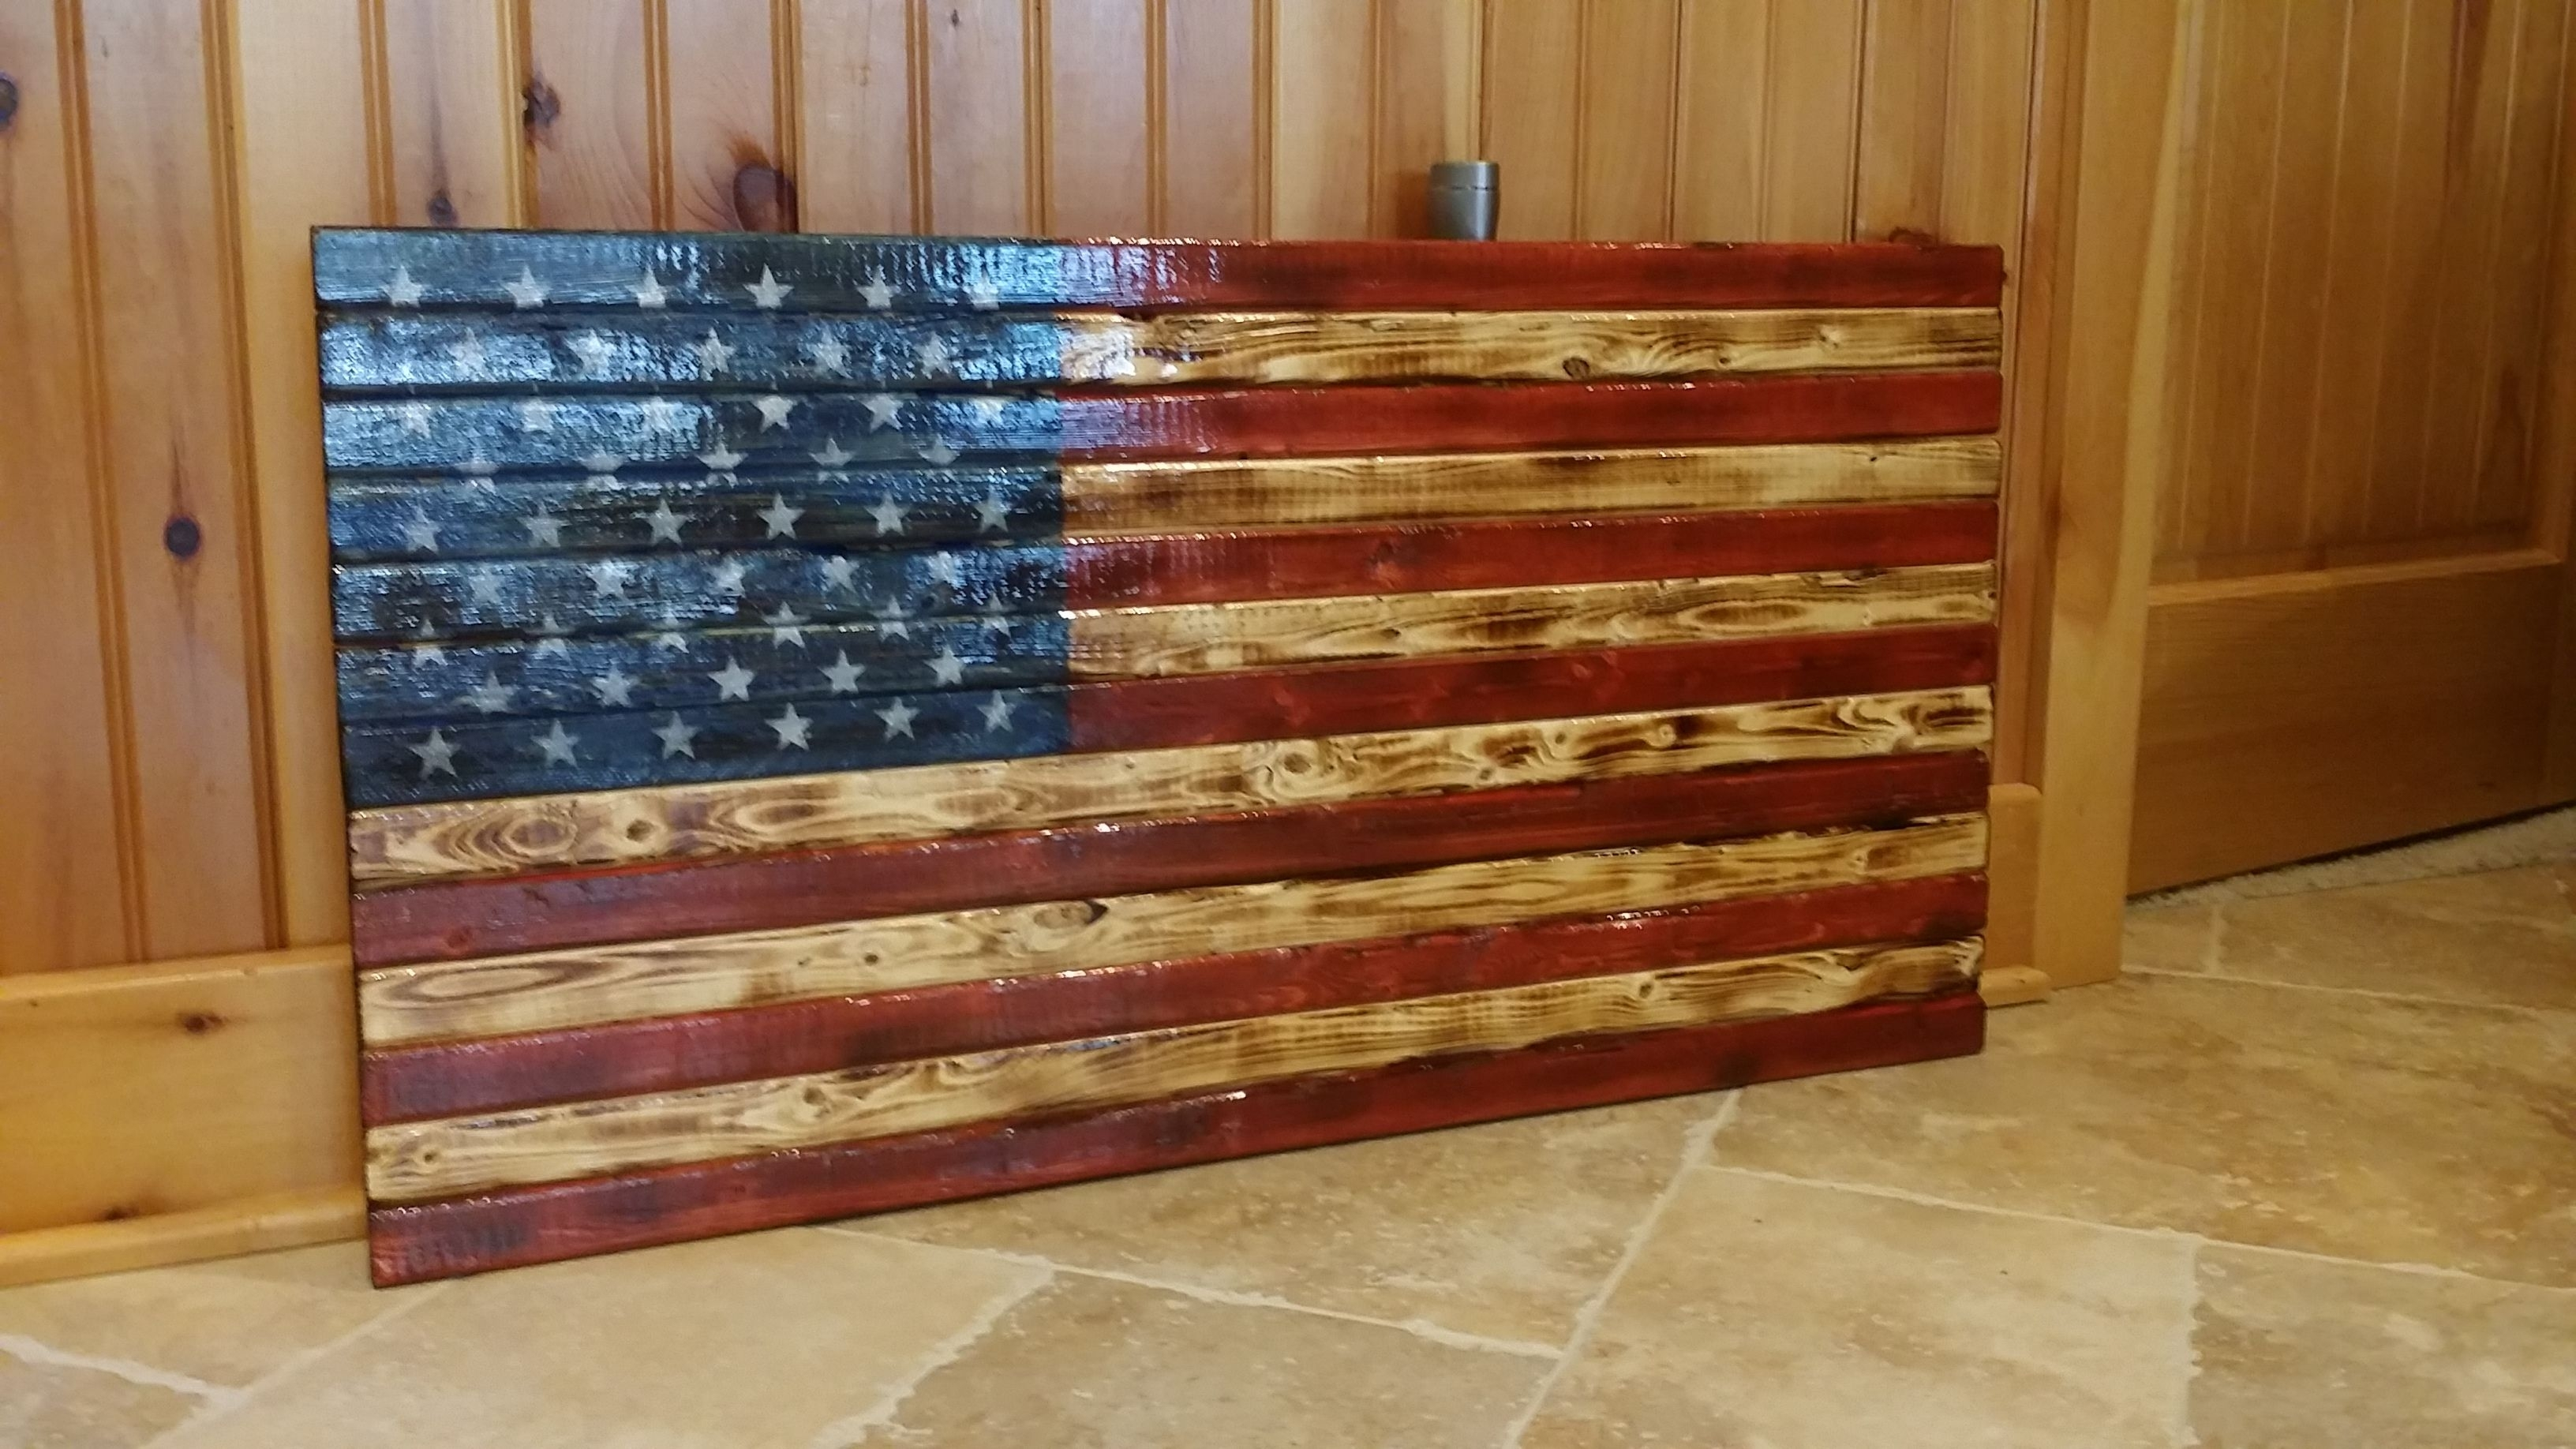 Rustic American Flag Wooden Wall Art. #americana #'merica #homedecor Intended For 2018 Rustic American Flag Wall Art (Gallery 17 of 20)